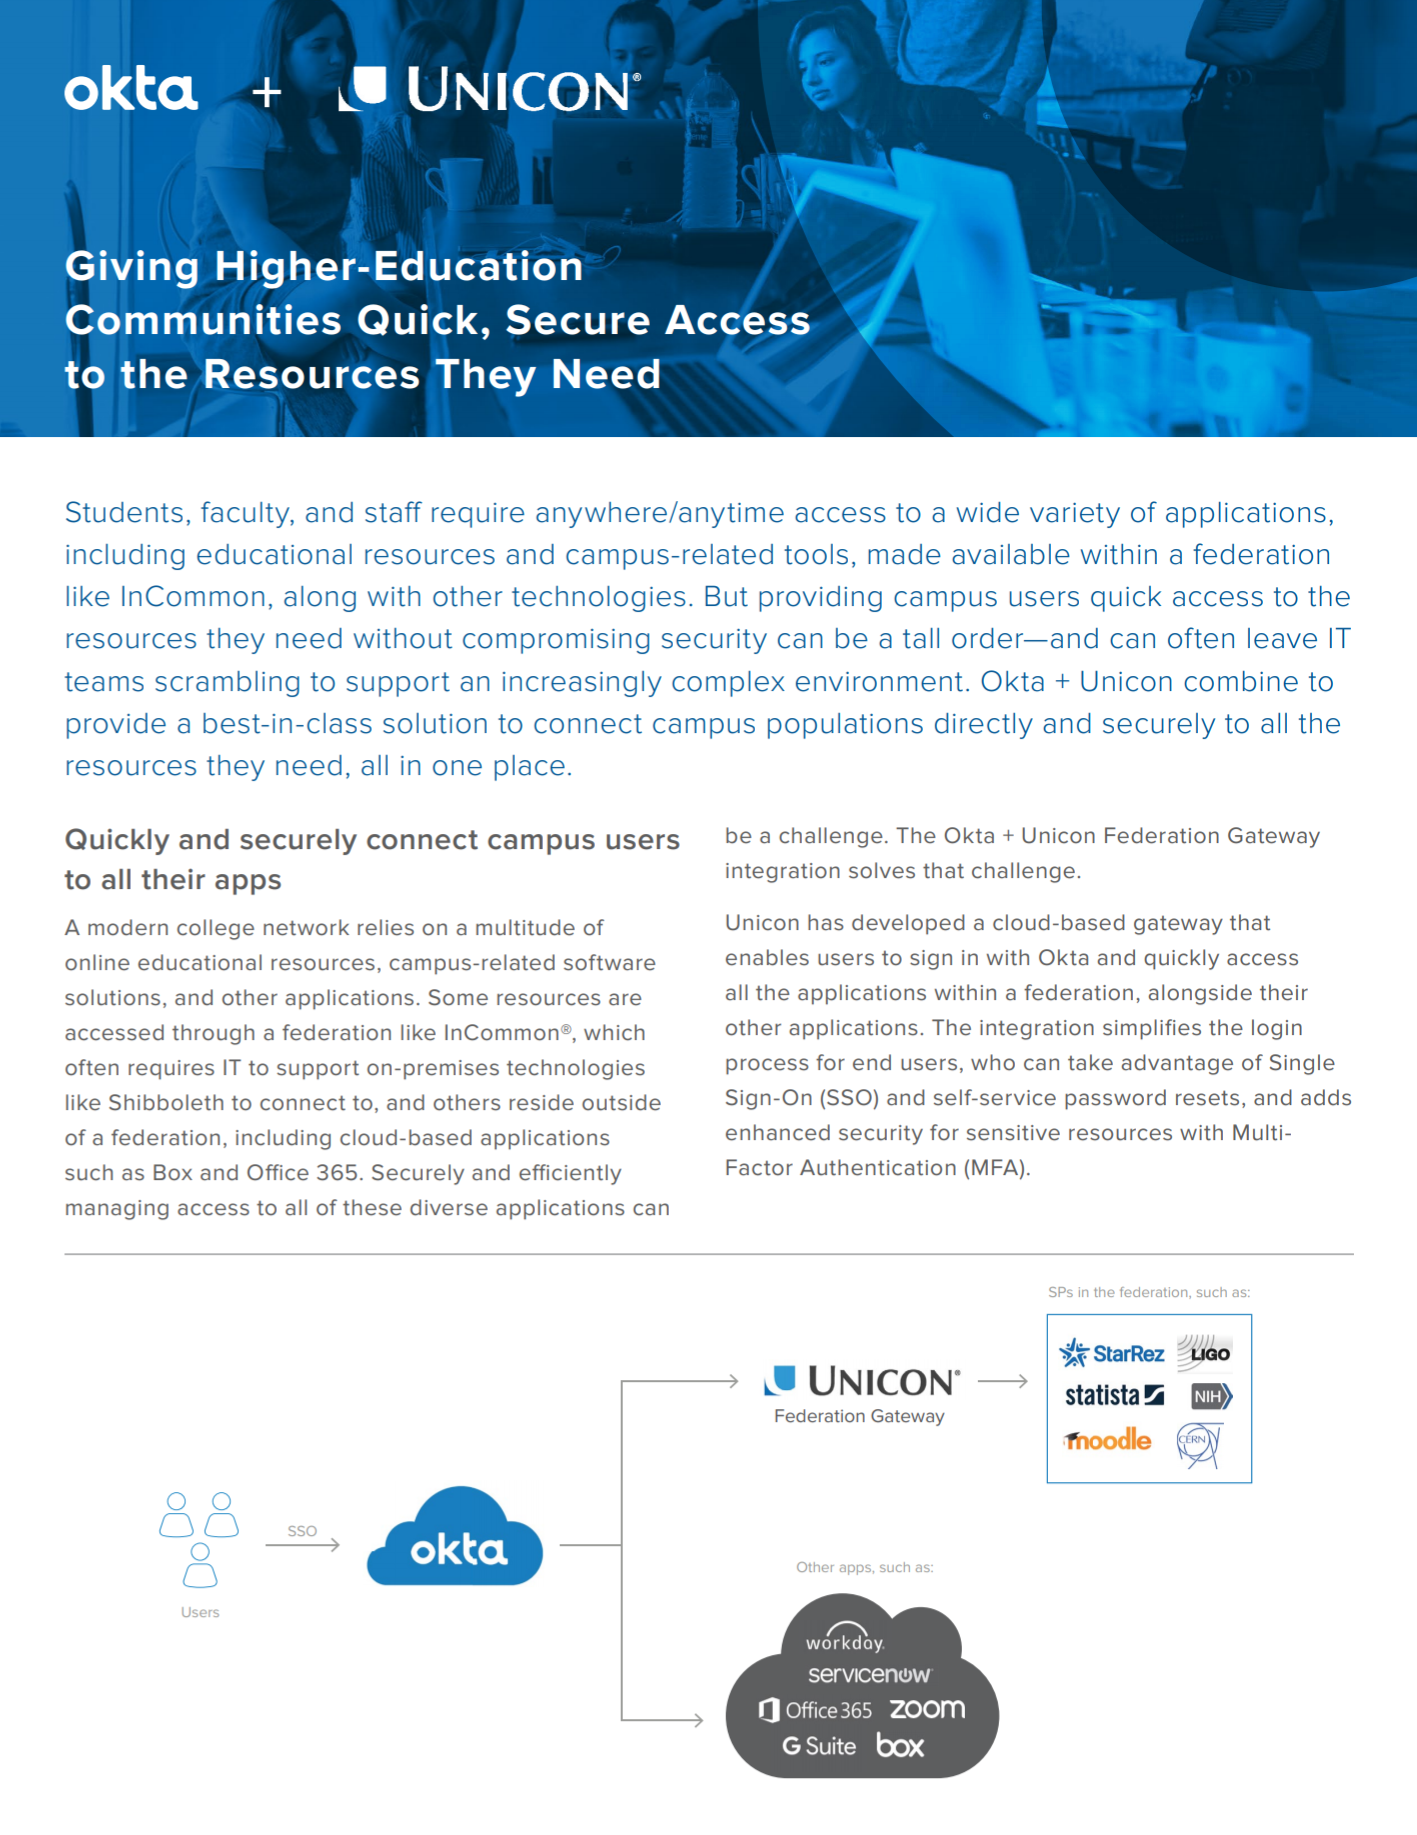 Okta and Unicon give higher-education communies quick, secure access to the resources they need.